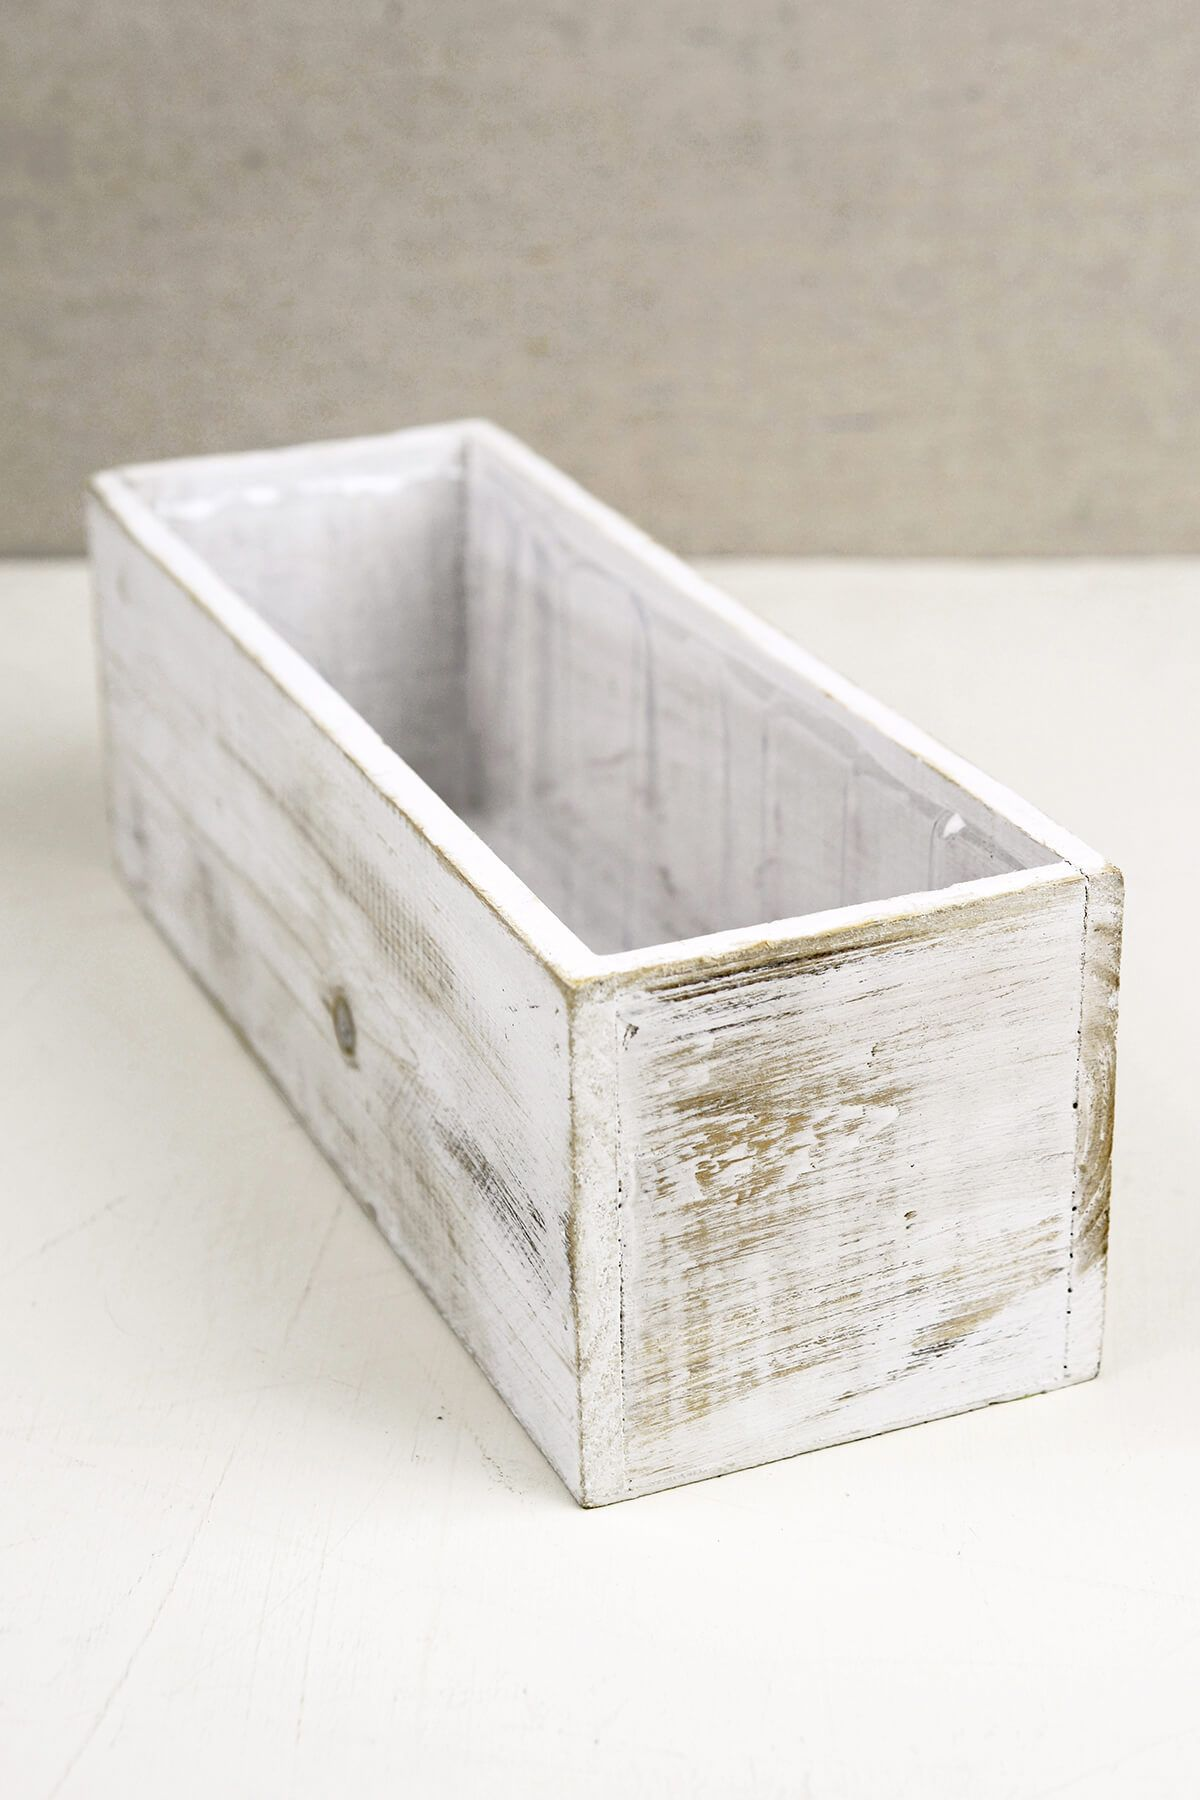 White 4x12 Wood Planter Boxes Planter Boxes Wooden Flower Boxes